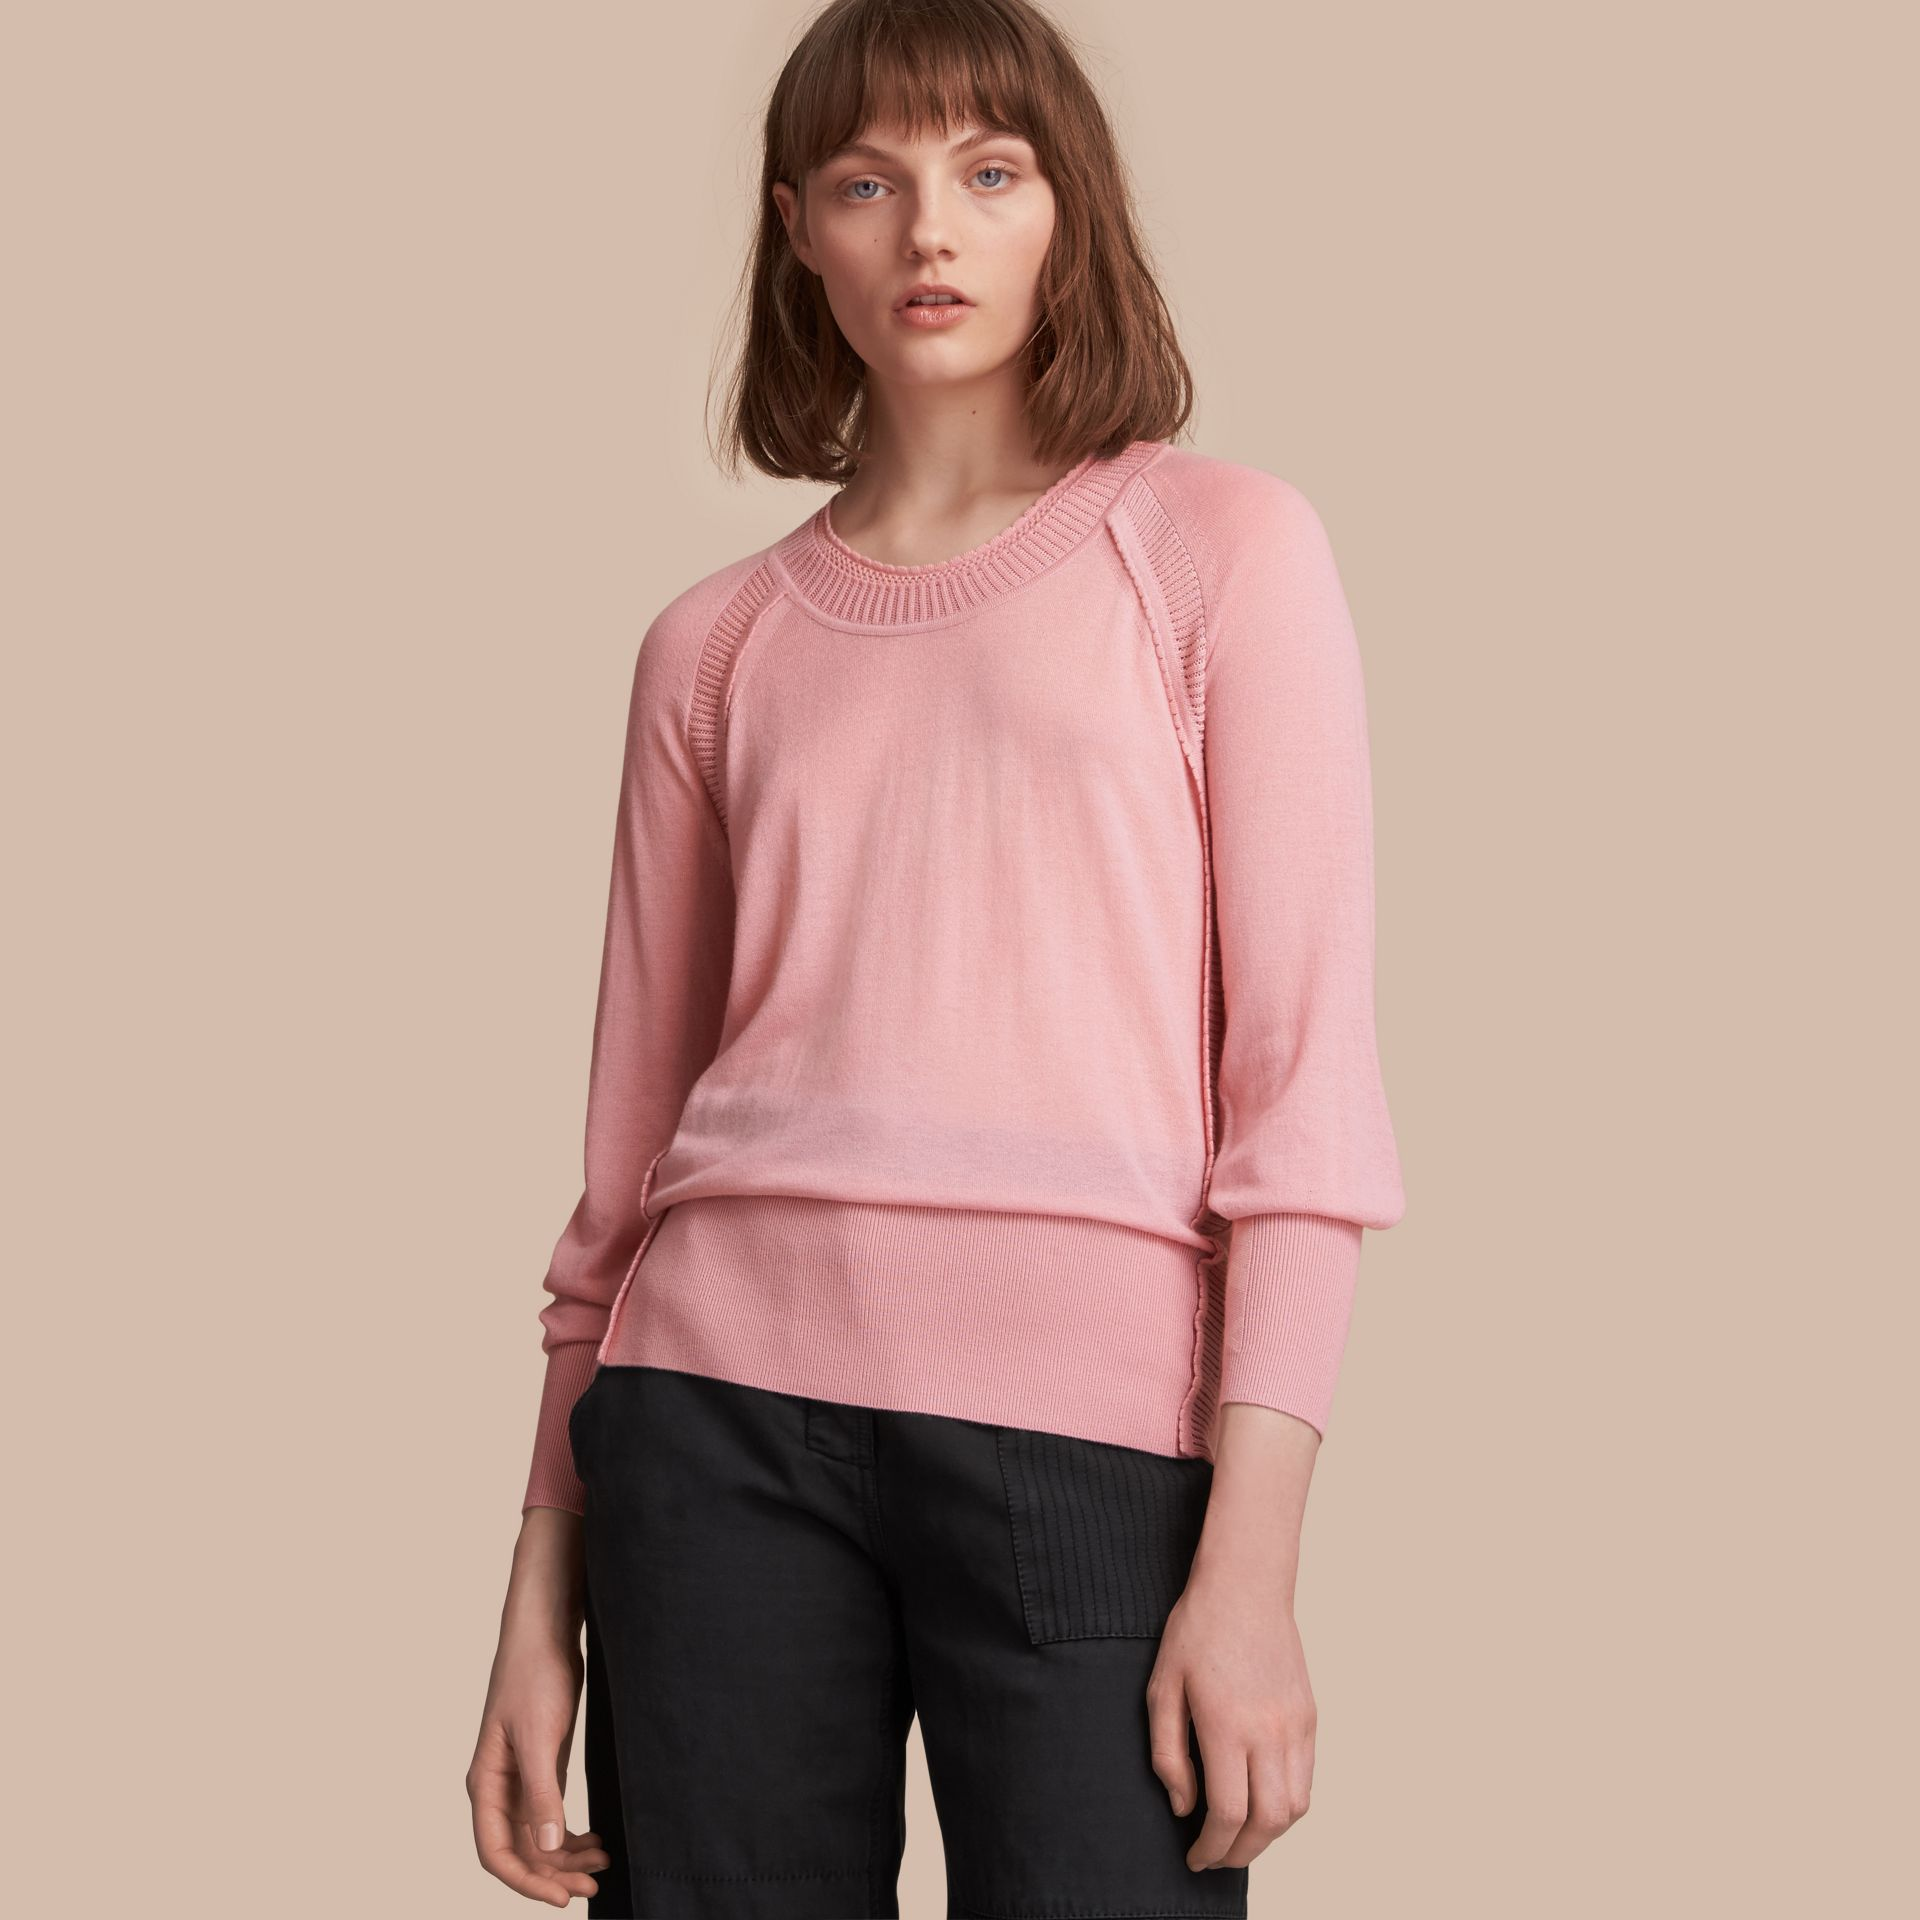 Open-knit Detail Cashmere Crew Neck Sweater in Apricot Pink - Women | Burberry Canada - gallery image 1